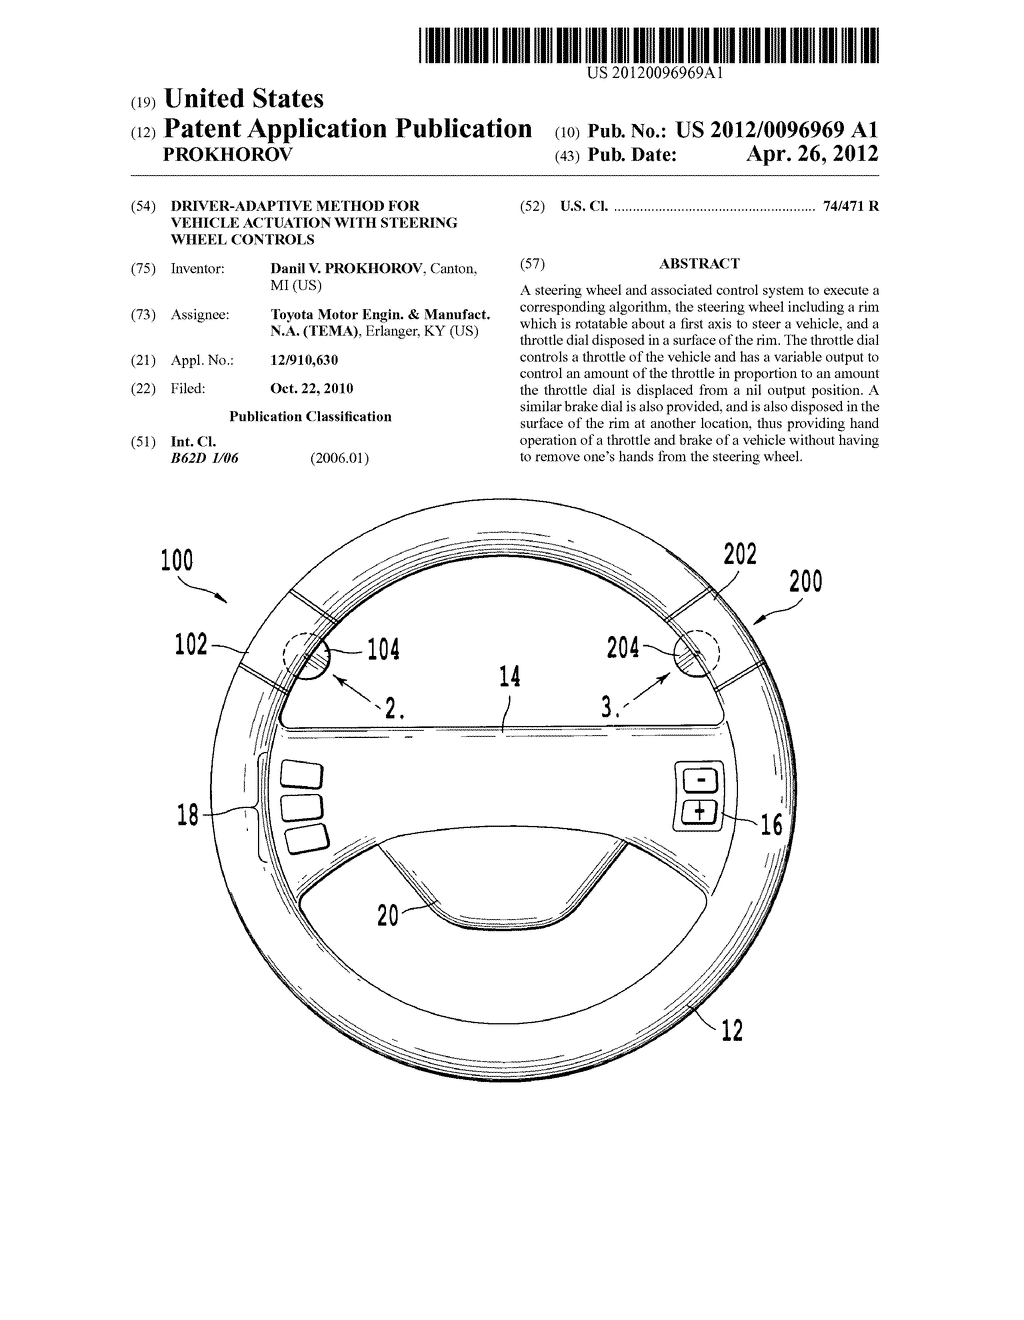 driver adaptive method for vehicle actuation with steering wheel rh patentsencyclopedia com f1 steering wheel diagram steering wheel diagram for a 1994 ford f 150